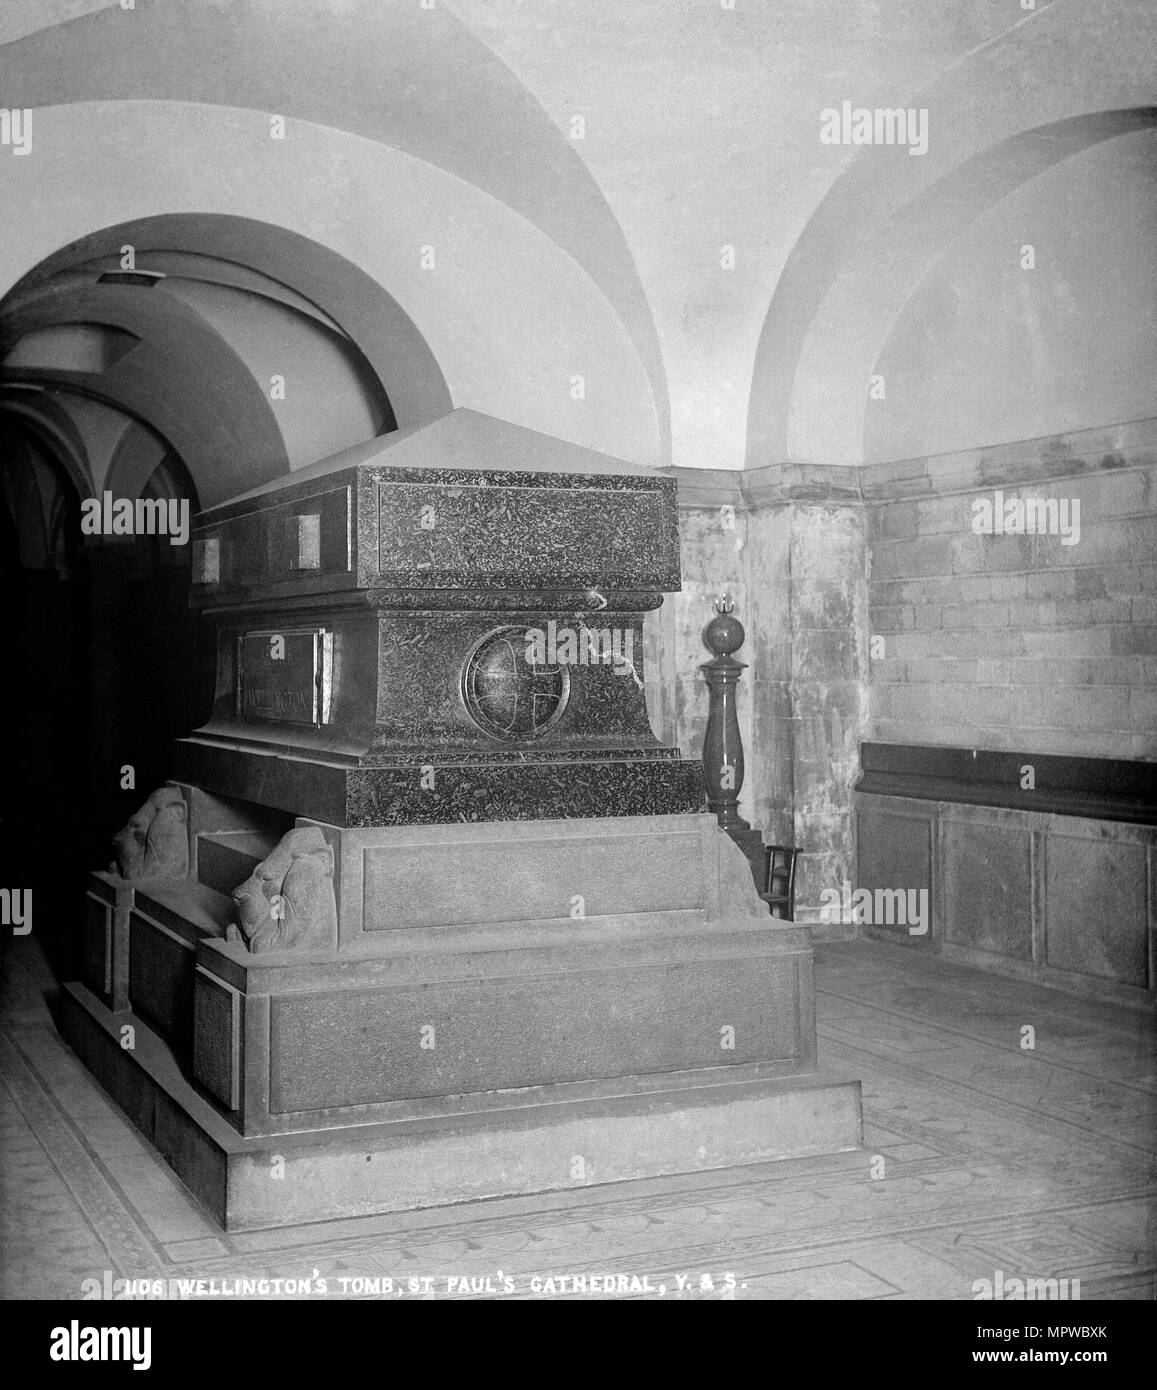 Duke of Wellington's tomb, St Paul's Cathedral, City of London, 1870-1900. Artist: York & Son. - Stock Image